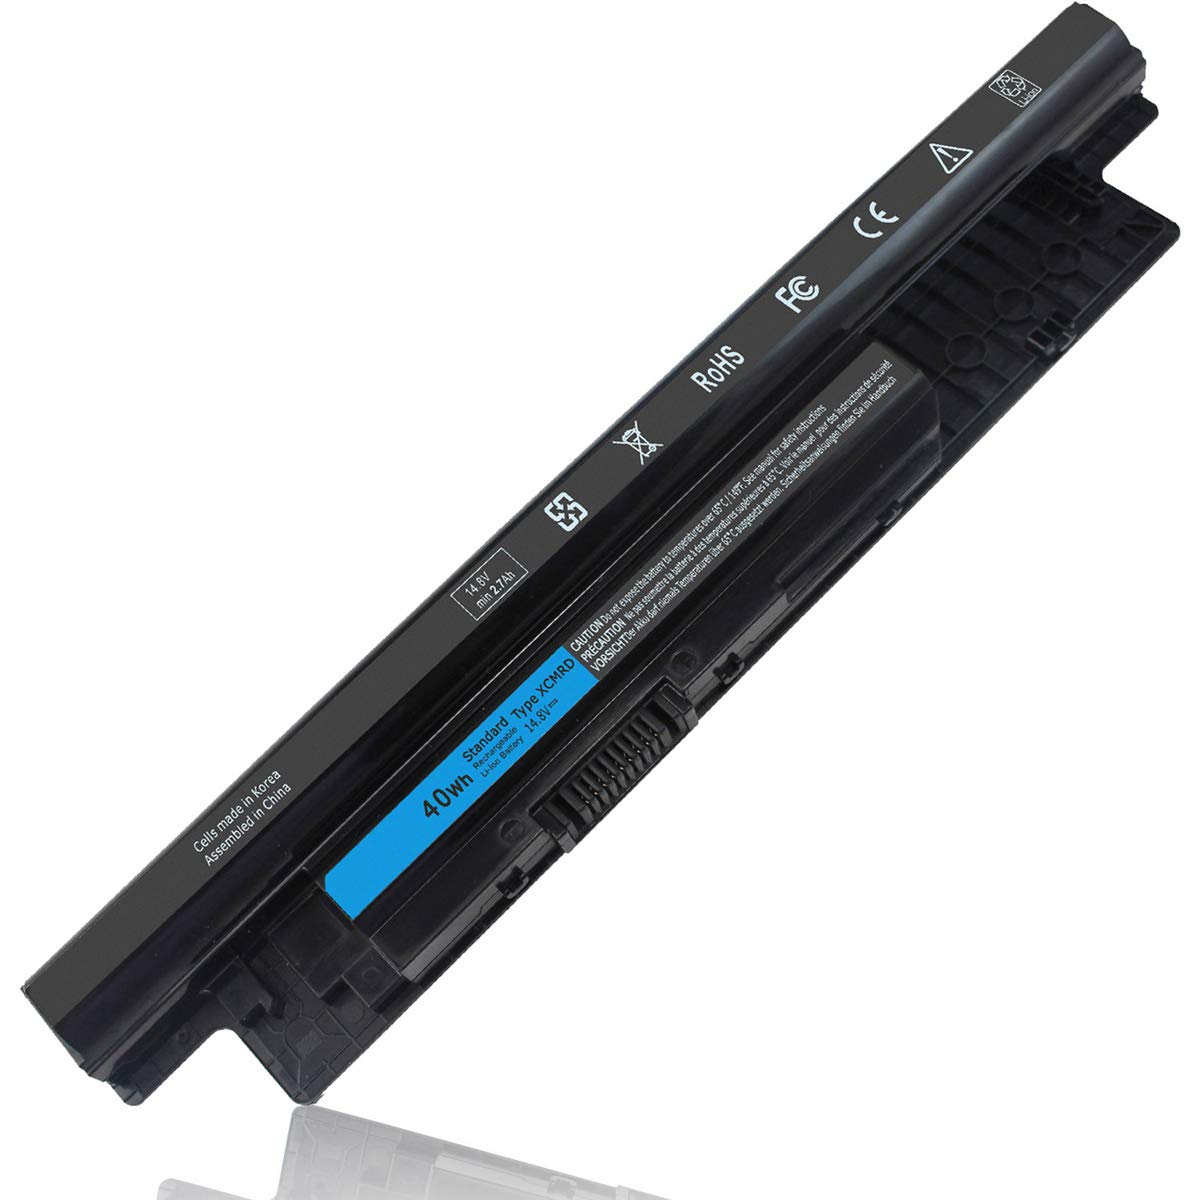 14.8V 40Wh XCMRD Battery Compatible with Dell Inspiron 15 3000 3542 3543 3531 3541 3521 3537 15R 5537 5521 17-3737 3721 17R-5737 14 3421 3437 14R 5421 5437 Latitude 3540 3440 P28F Vostro 2521 2421